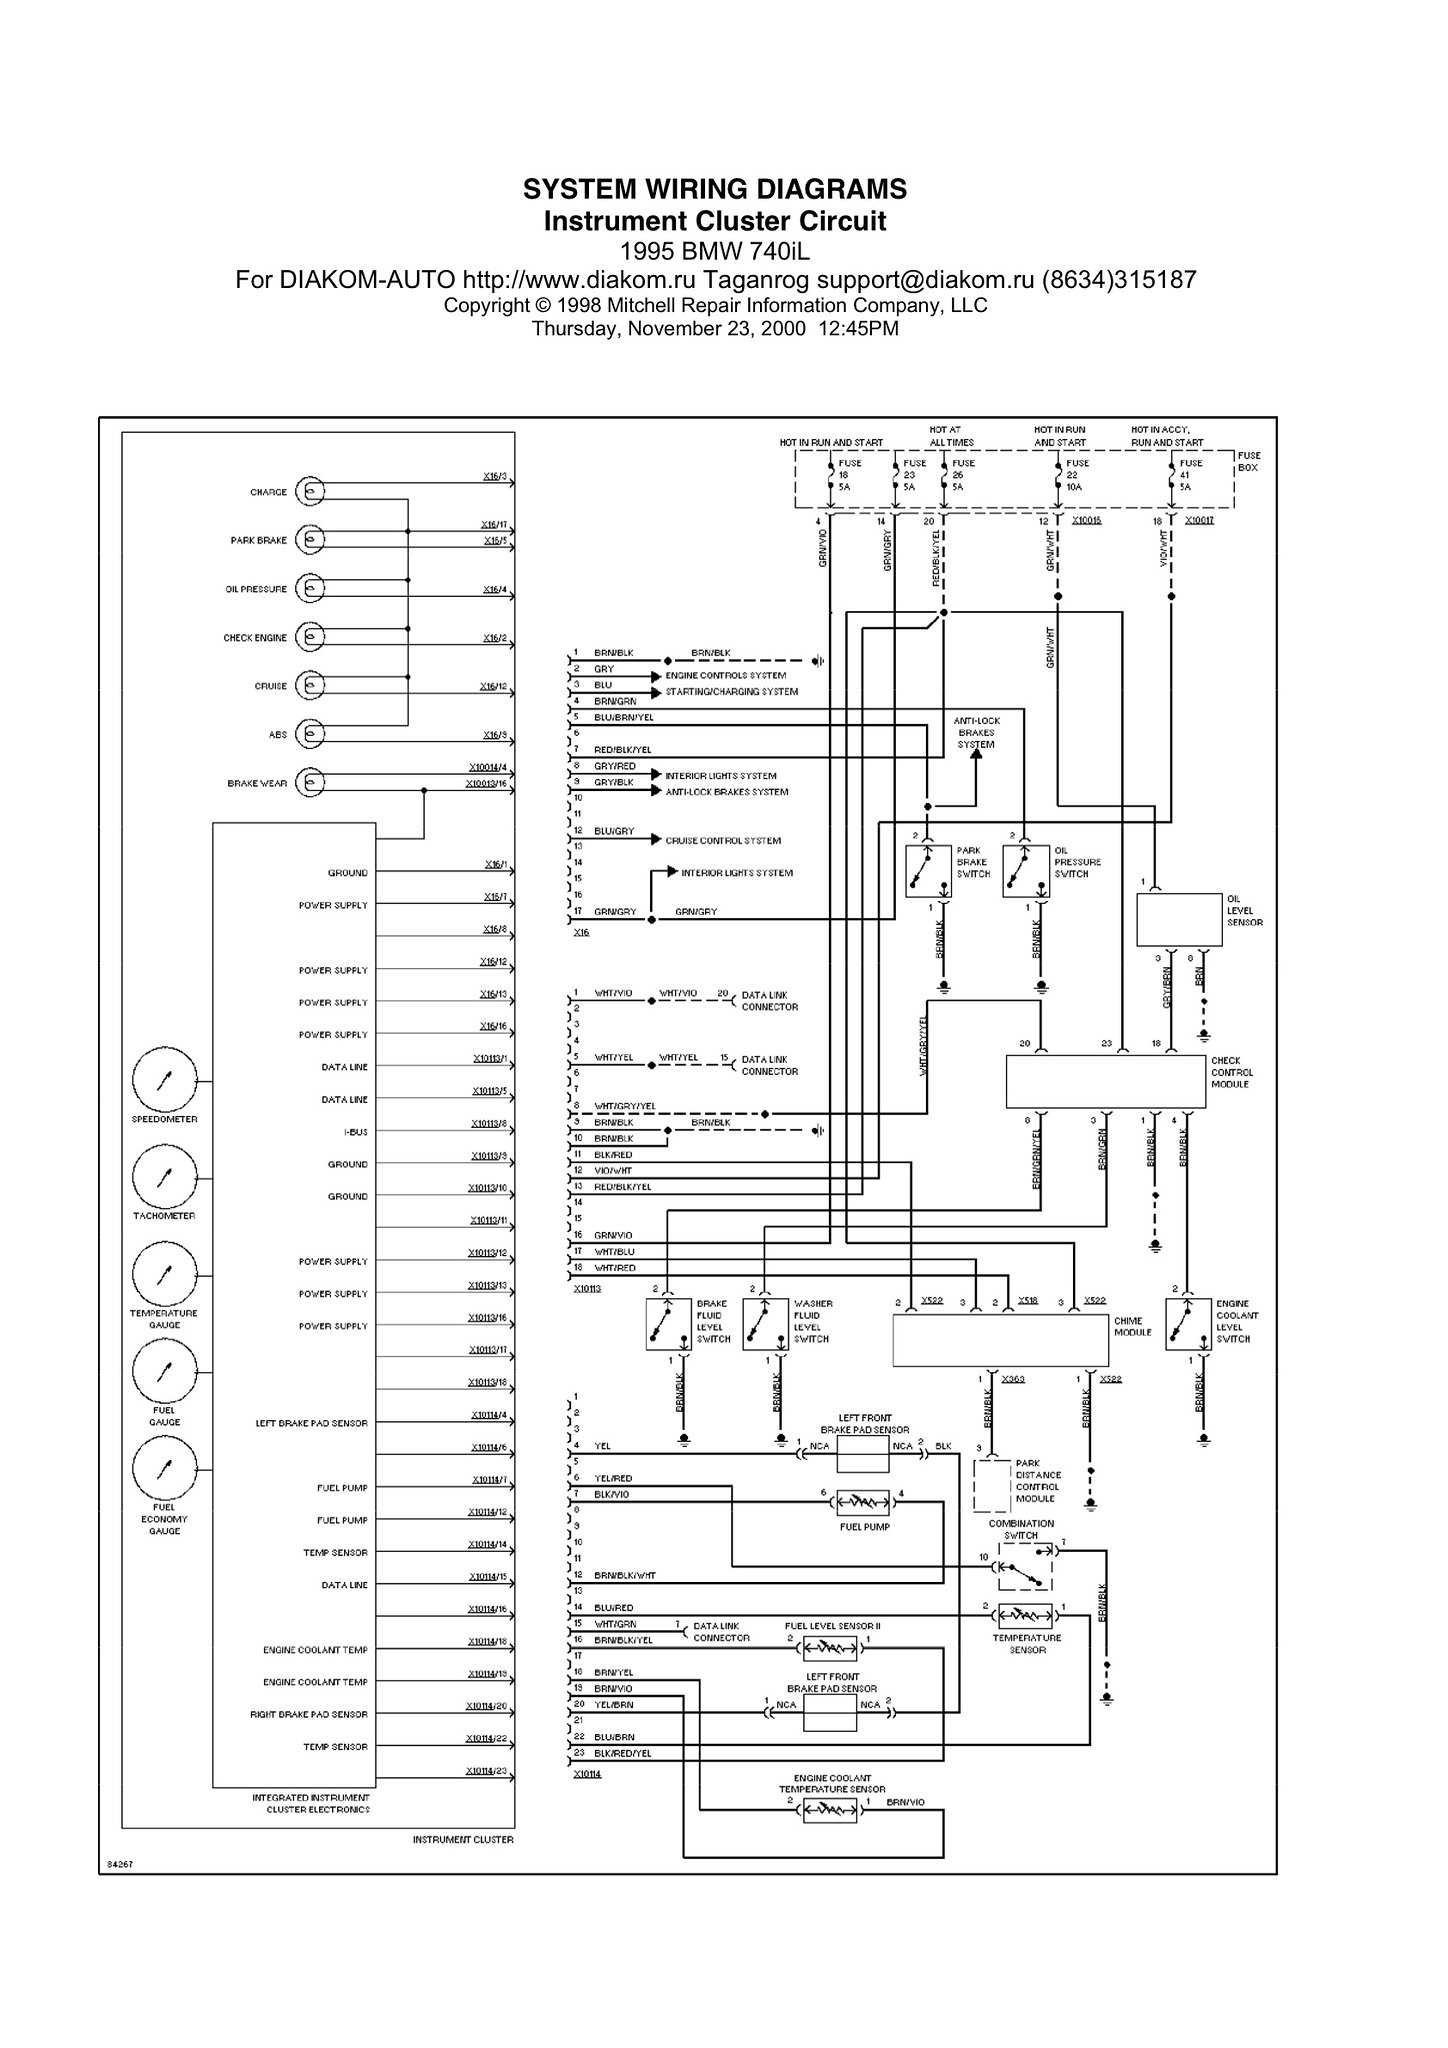 2004 530i wiring diagrams 25 wiring diagram images